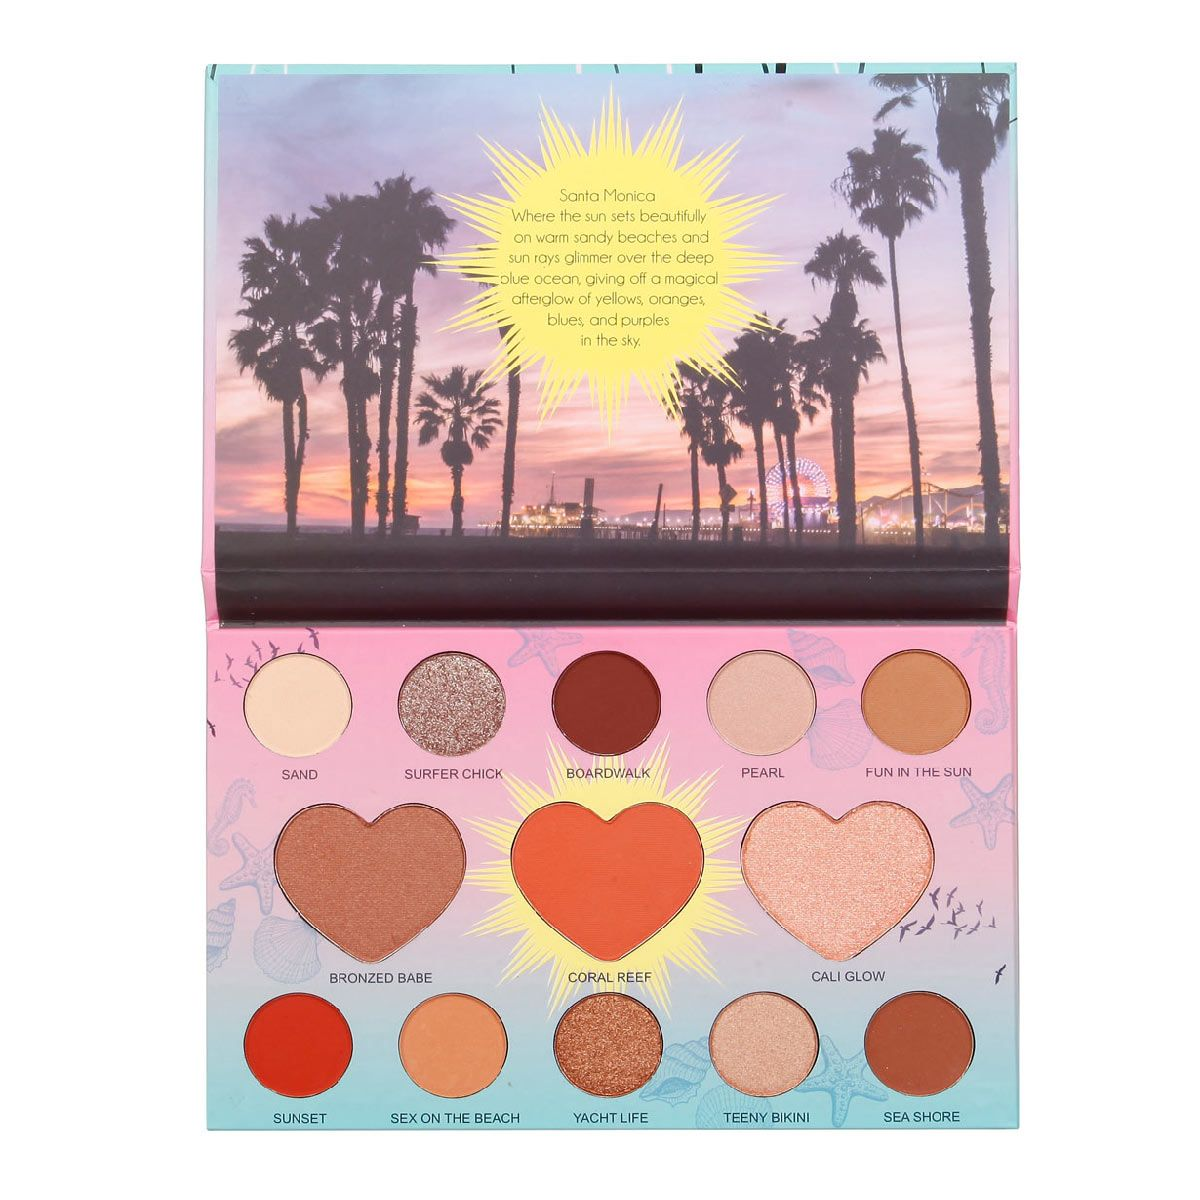 ITA2013-2 : LA Beauty Palette Beach Babe ( Santamonica ) 6 PC